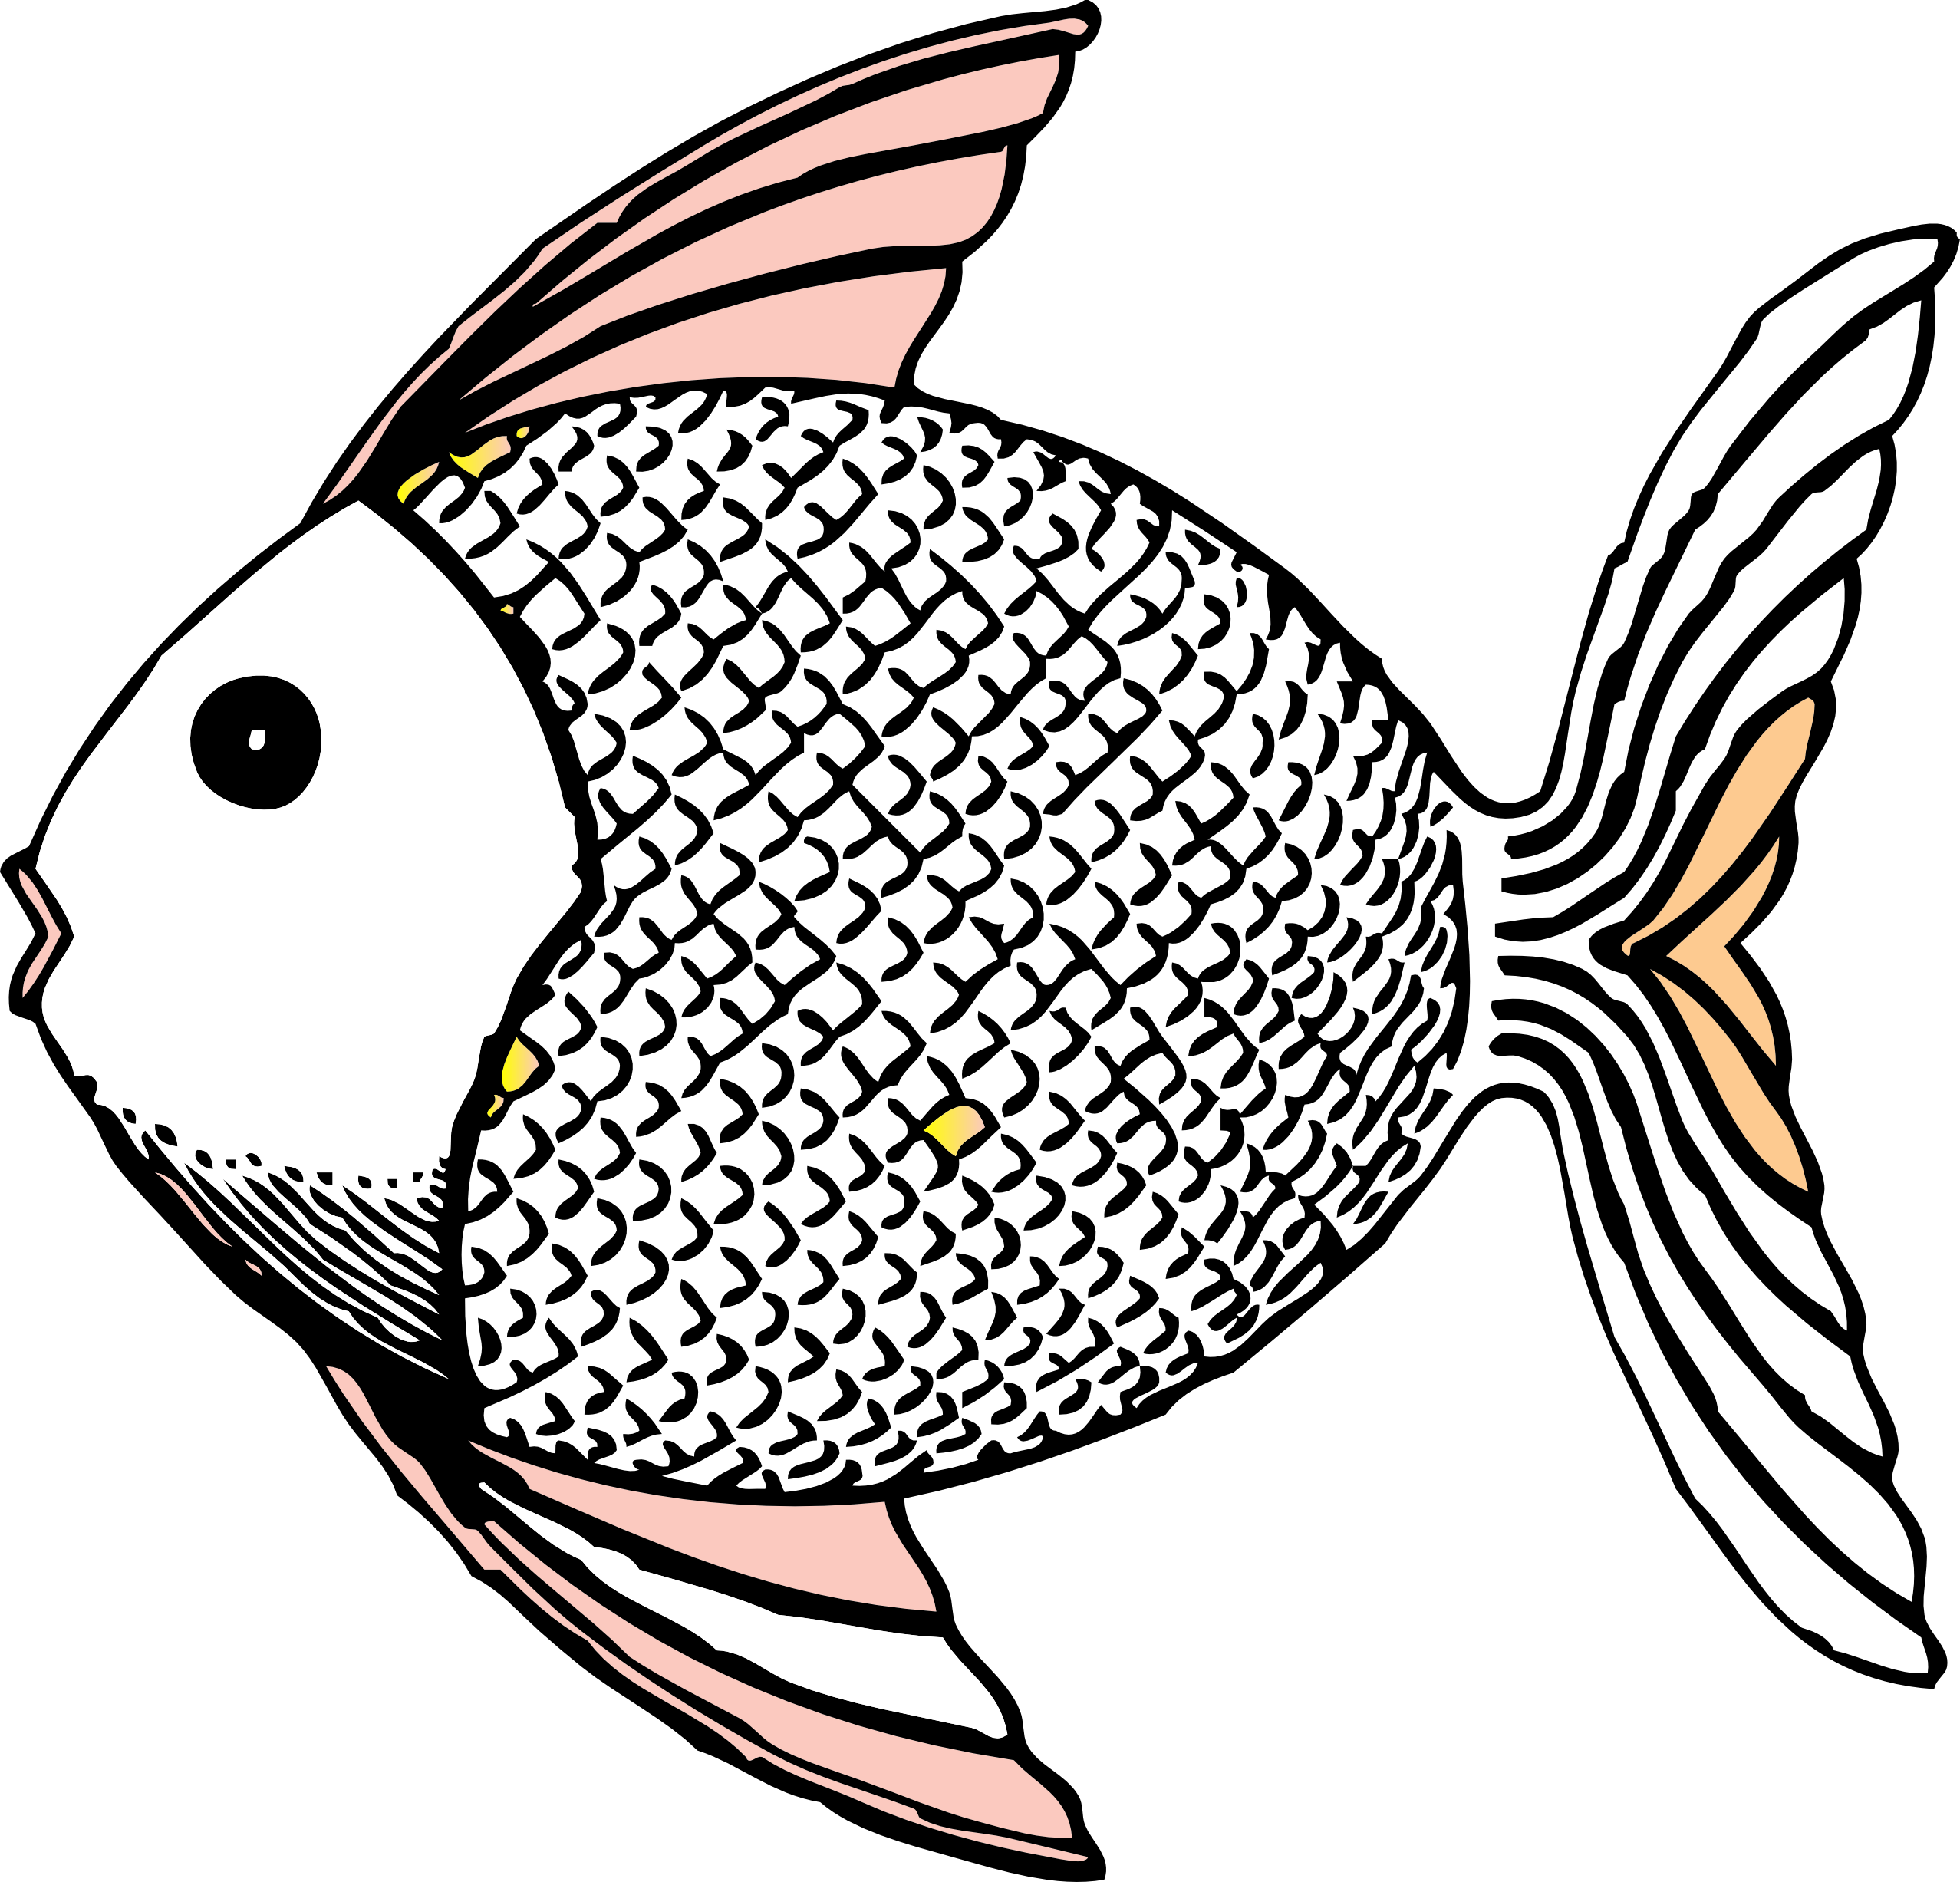 Ocean fish clipart black and white clip art library library Fish Clip Art Black and White | tropical fish black white line art ... clip art library library